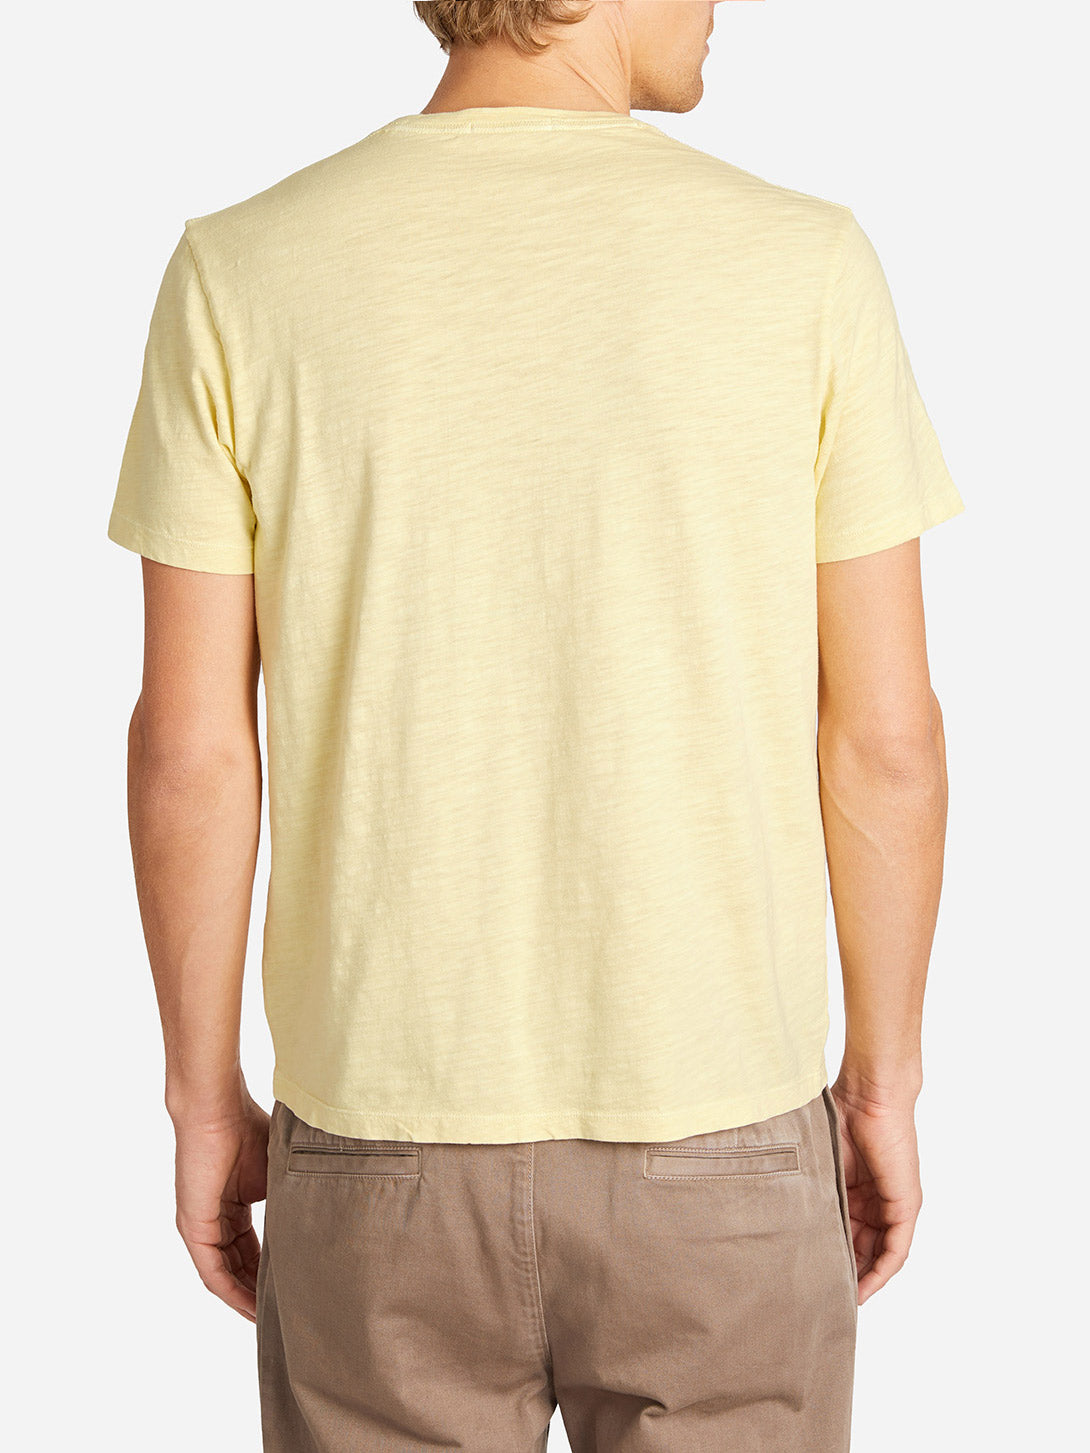 BOWERY SLUB POCKET TEE CREAM YELLOW HERITAGE LINE